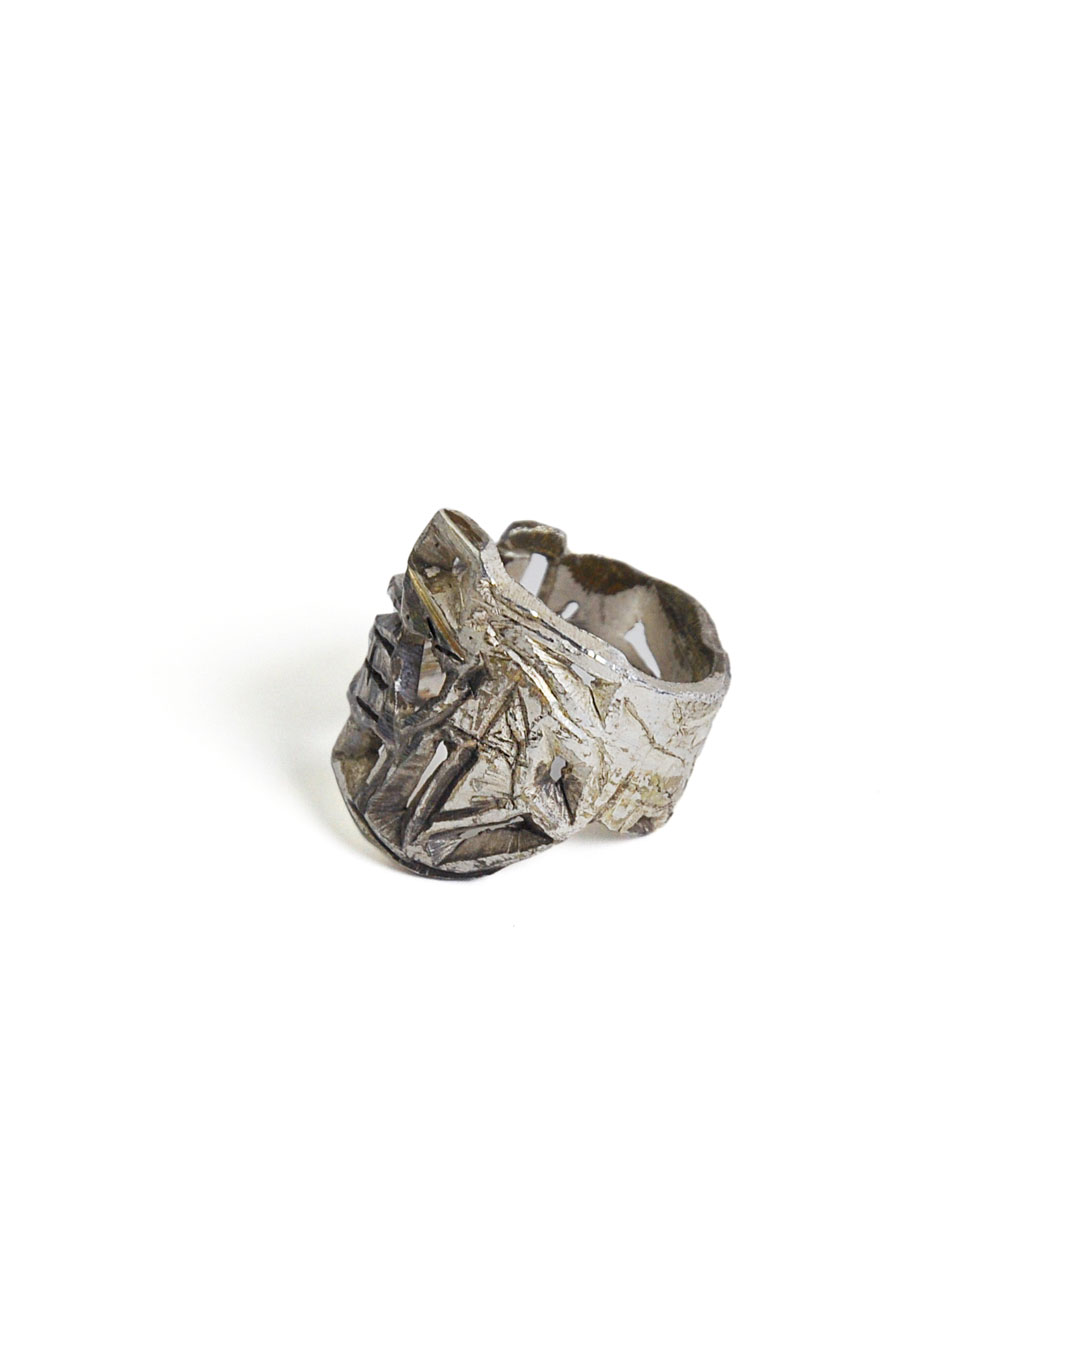 Rudolf Kocéa, untitled, 2014, ring; silver alloy, ø 22 x 23 mm, €680